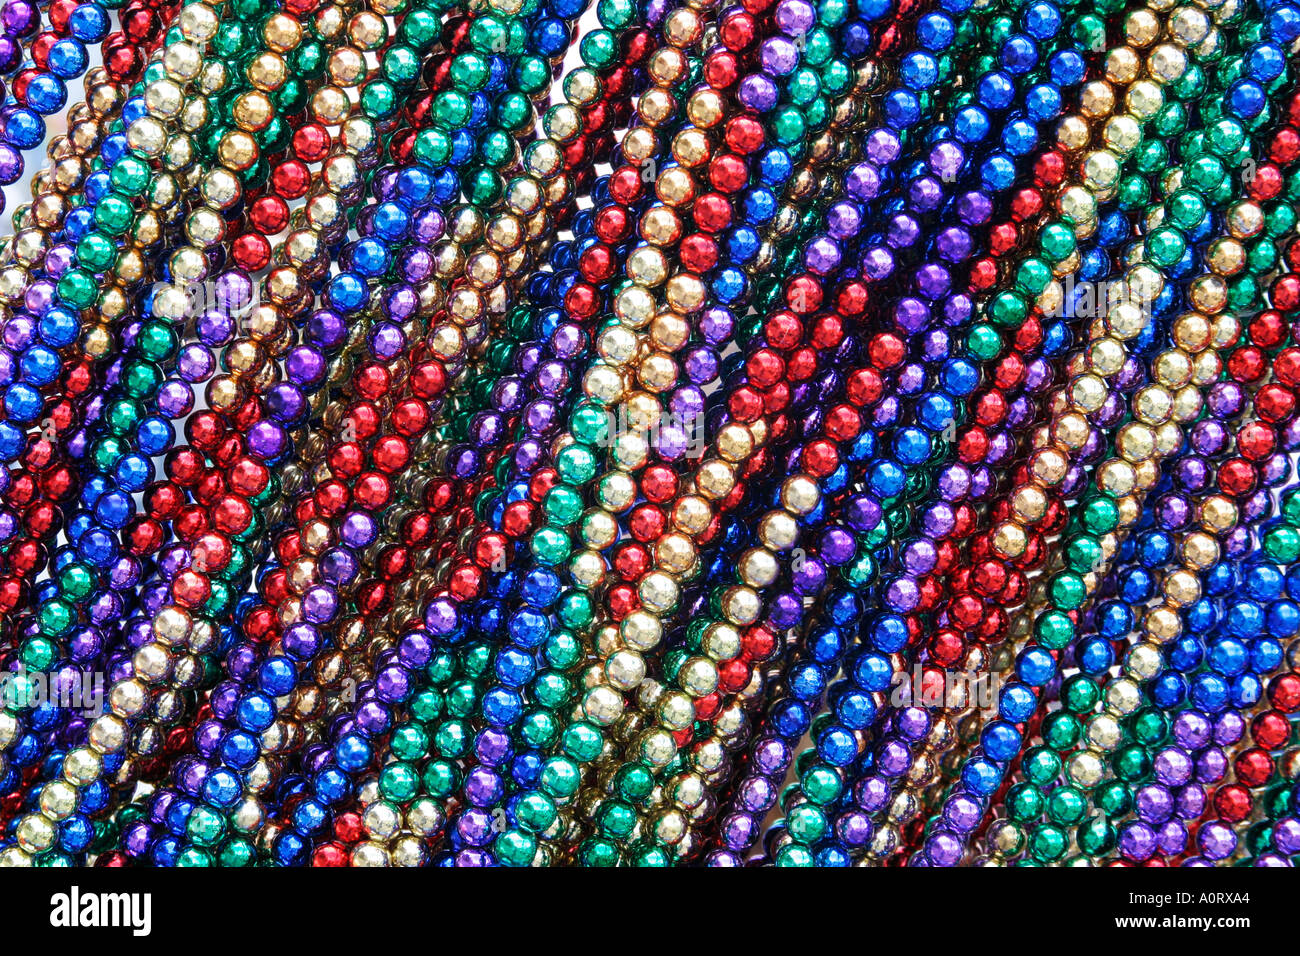 party at com wholesale hh carnival showroom mardi beads gras manufacturers suppliers alibaba and